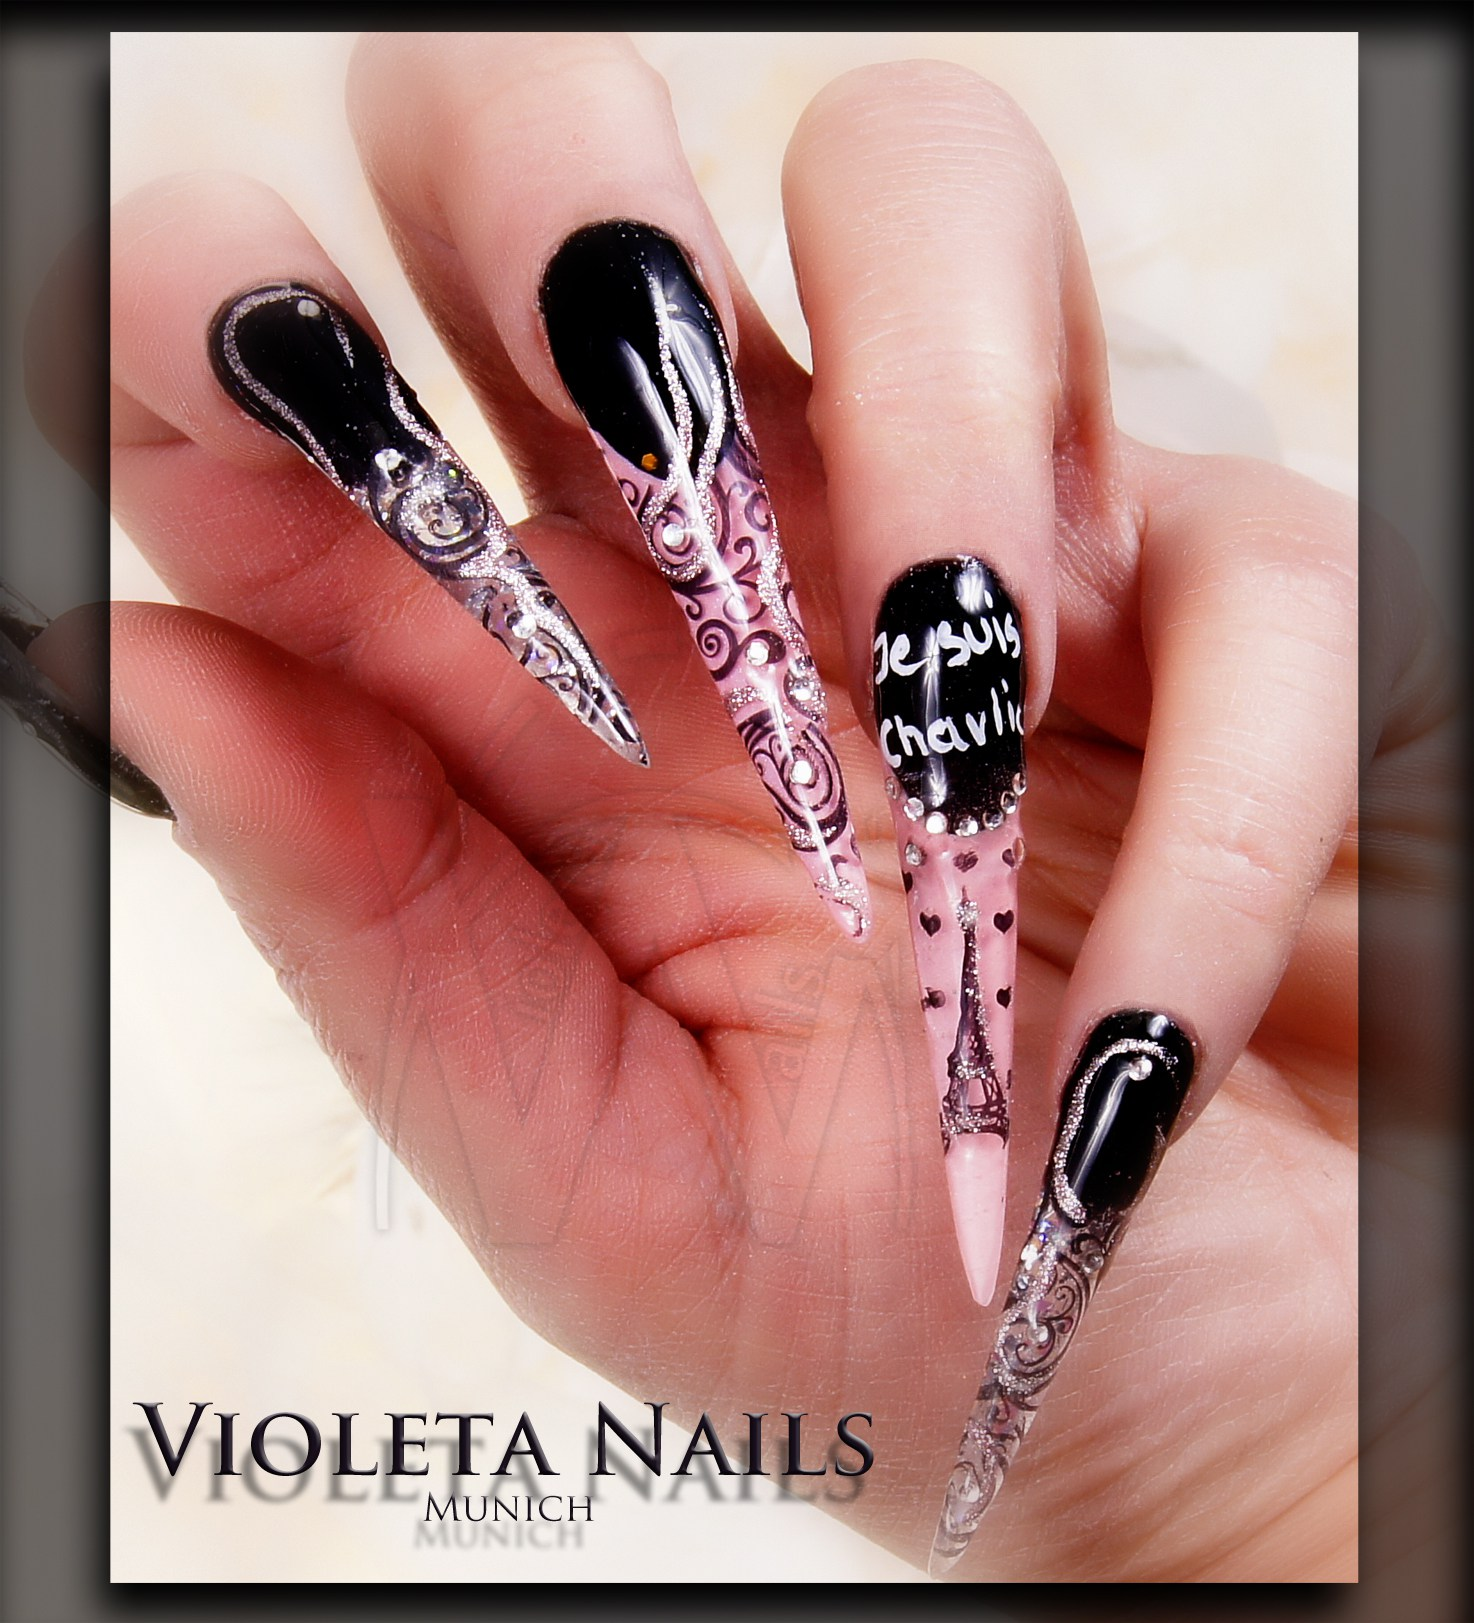 Learn how to do acrylic nails - New Expression Nails